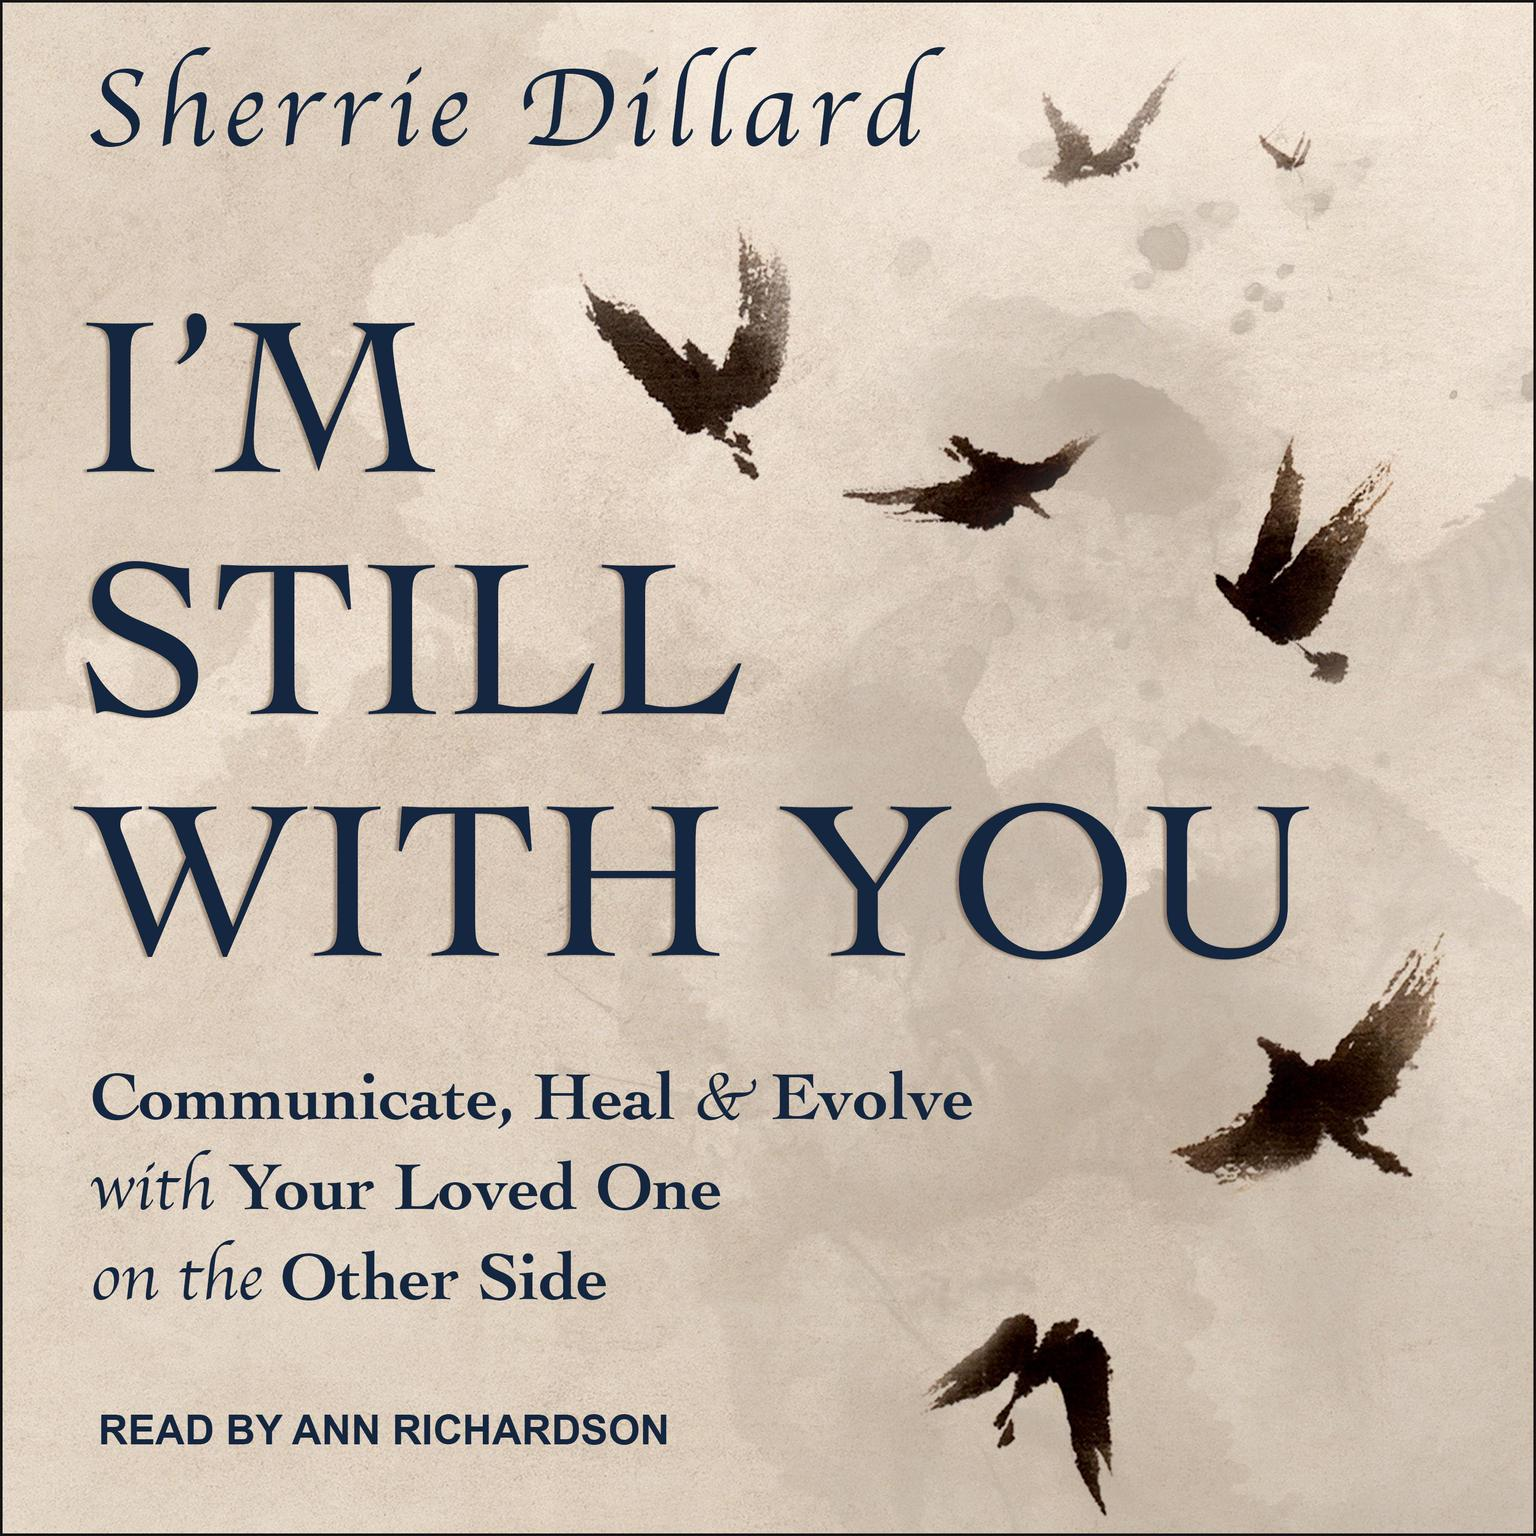 Im Still With You: Communicate, Heal & Evolve with Your Loved One on the Other Side Audiobook, by Sherrie Dillard